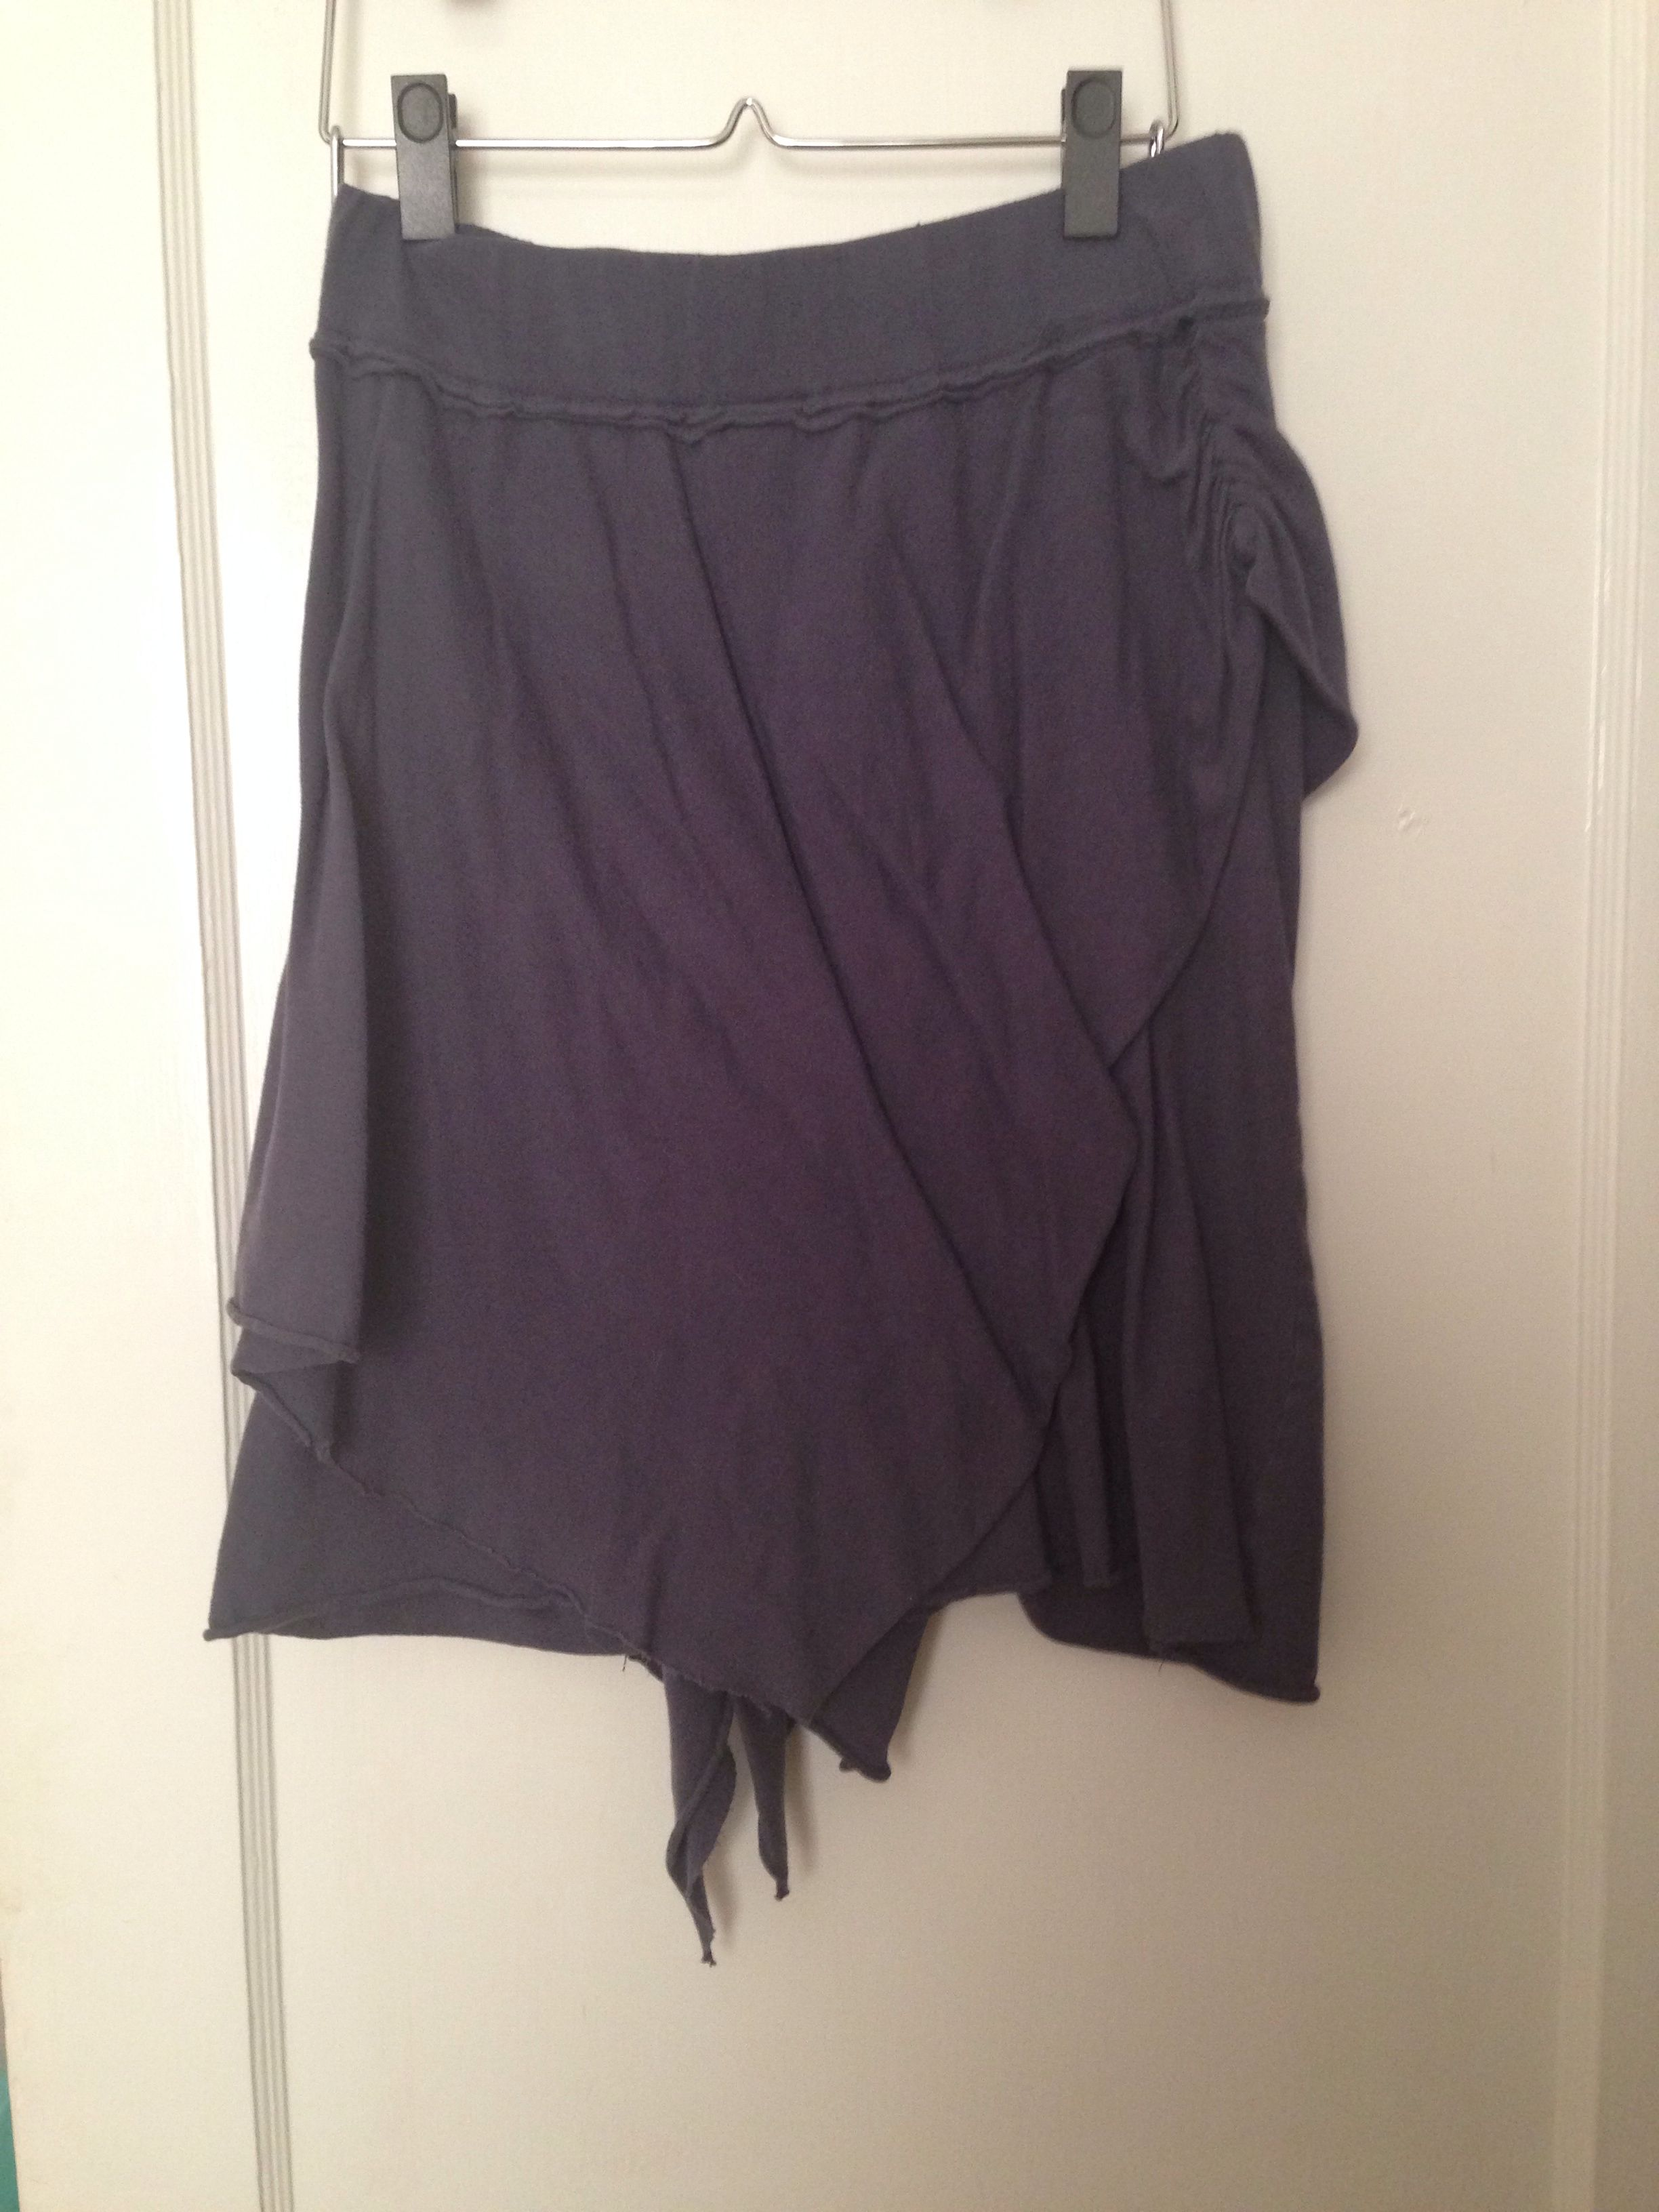 Xhiliration navy cotton jersey skirt size small